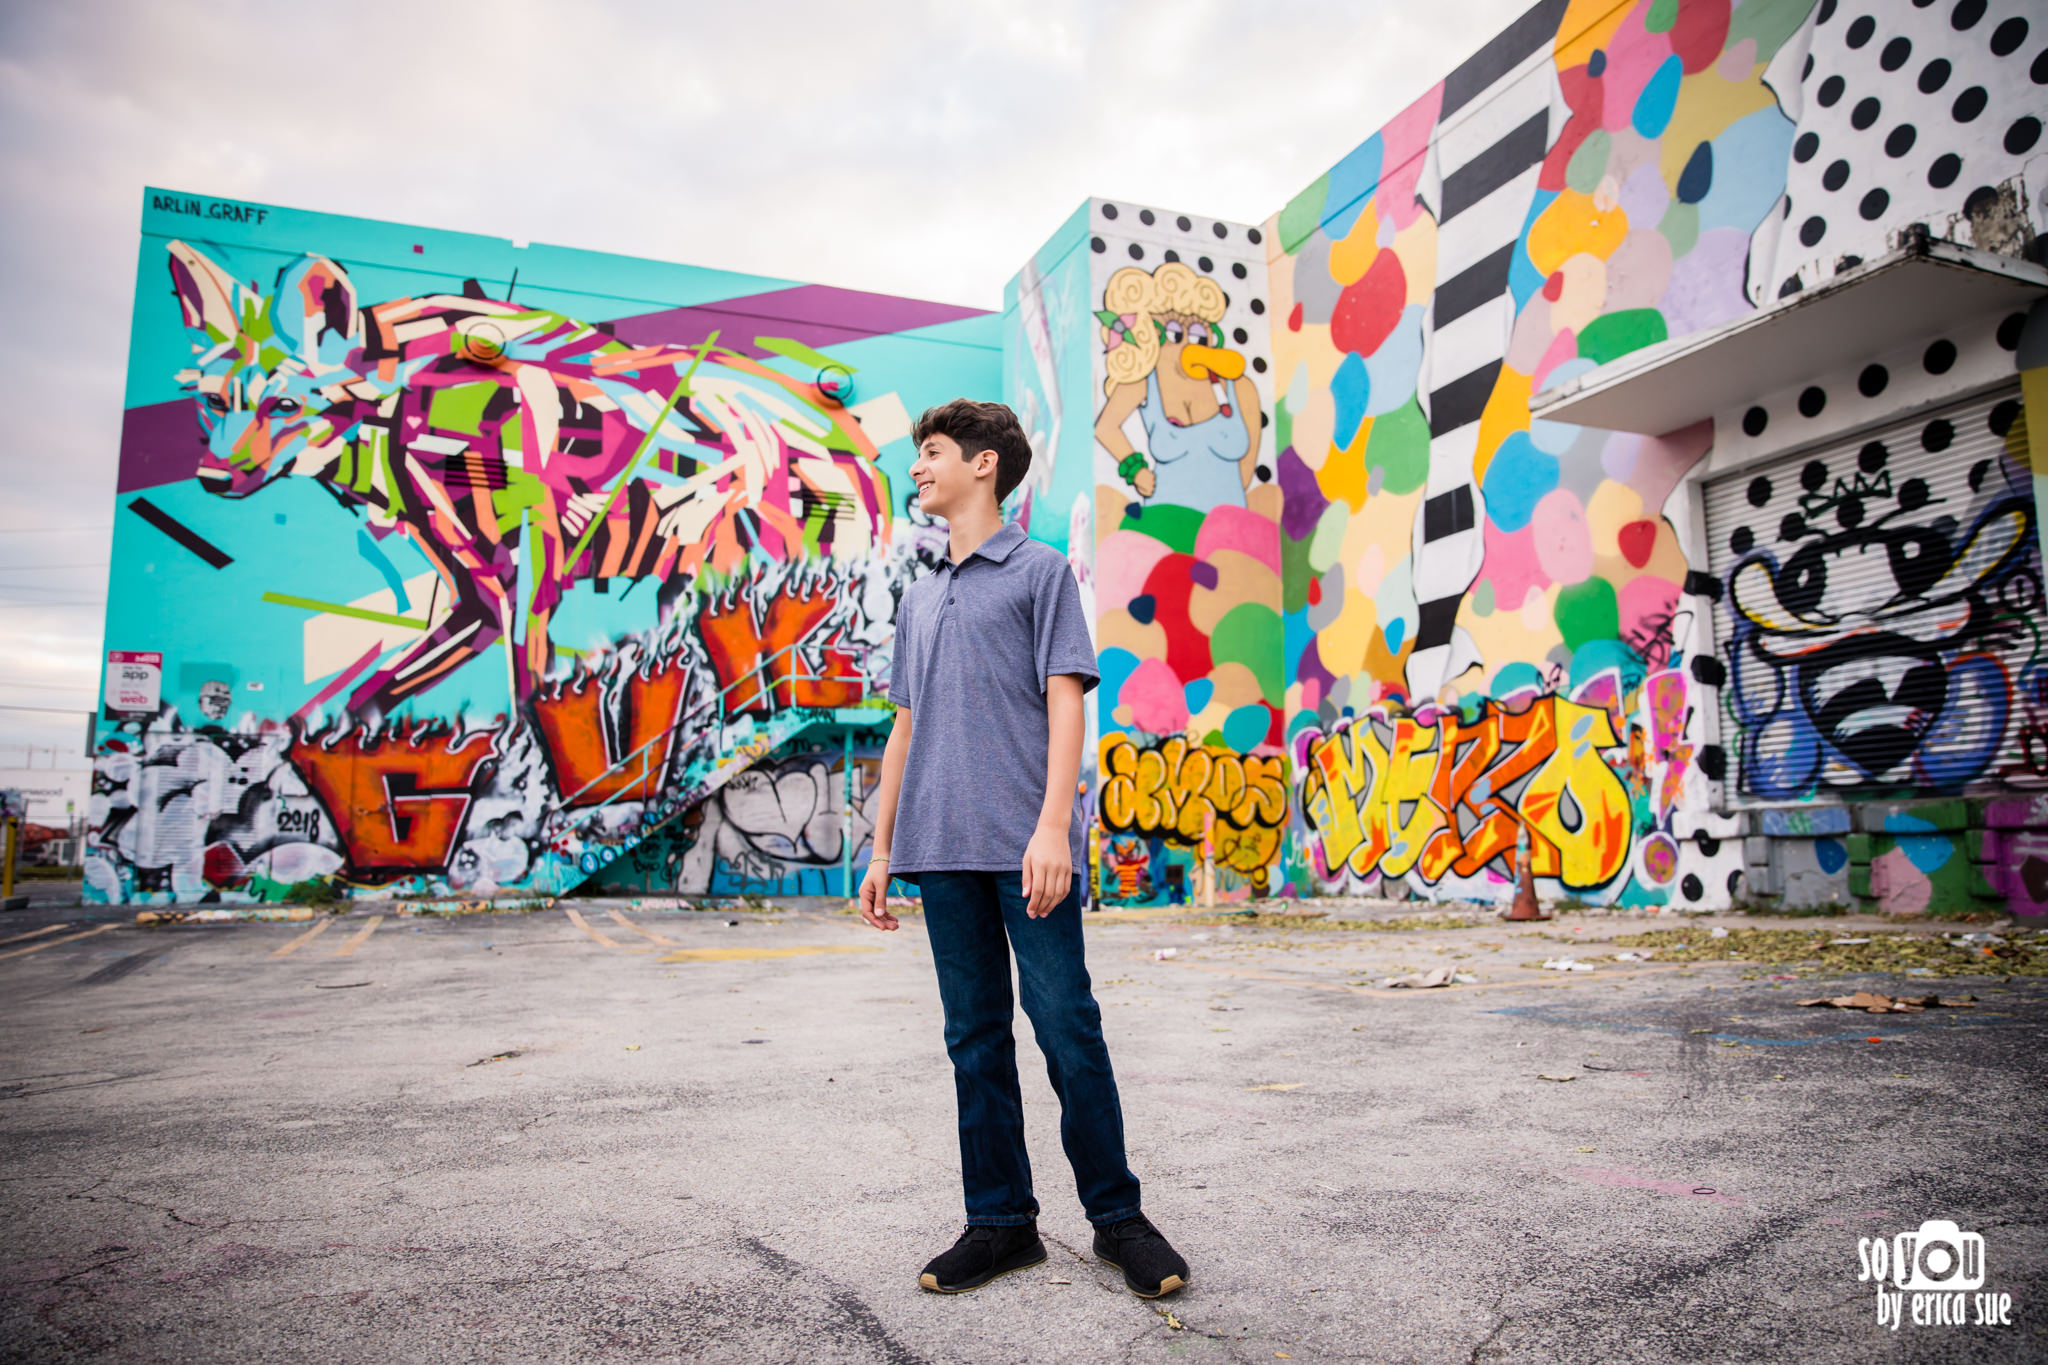 so-you-by-erica-sue-wynwood-miami-photographer-mitzvah-pre-shoot-0221.jpg